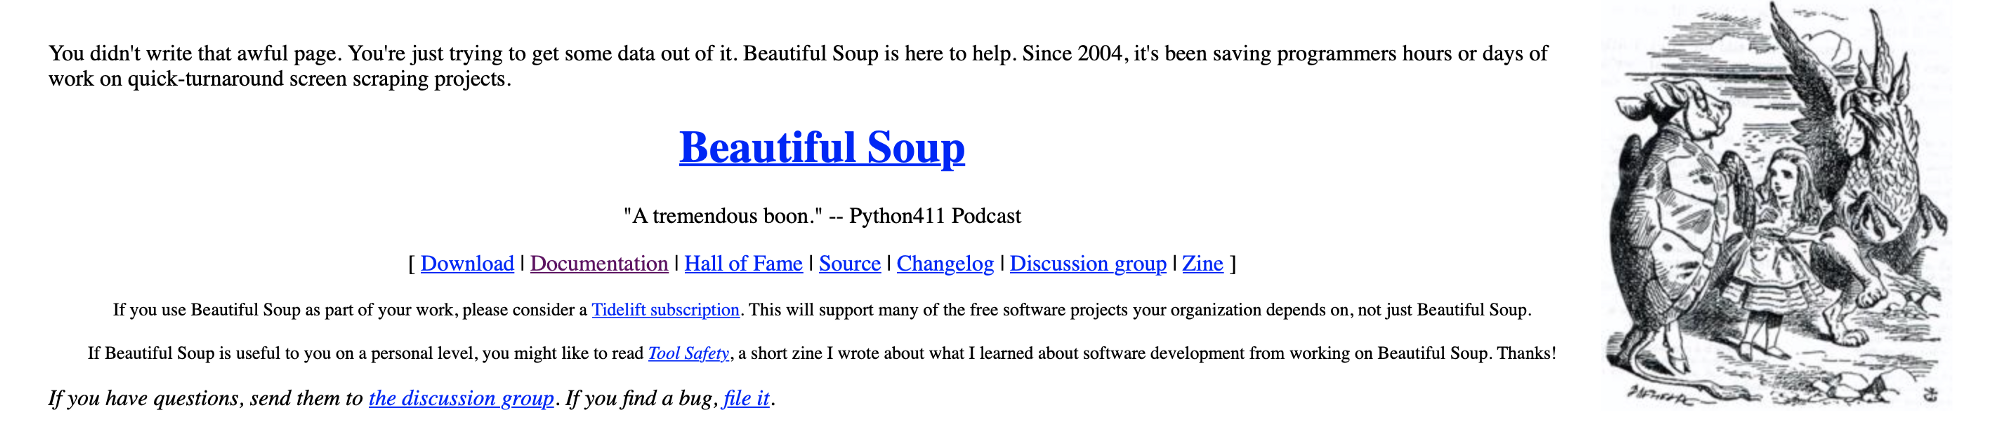 Forget APIs Do Python Scraping Using Beautiful Soup, Import Data